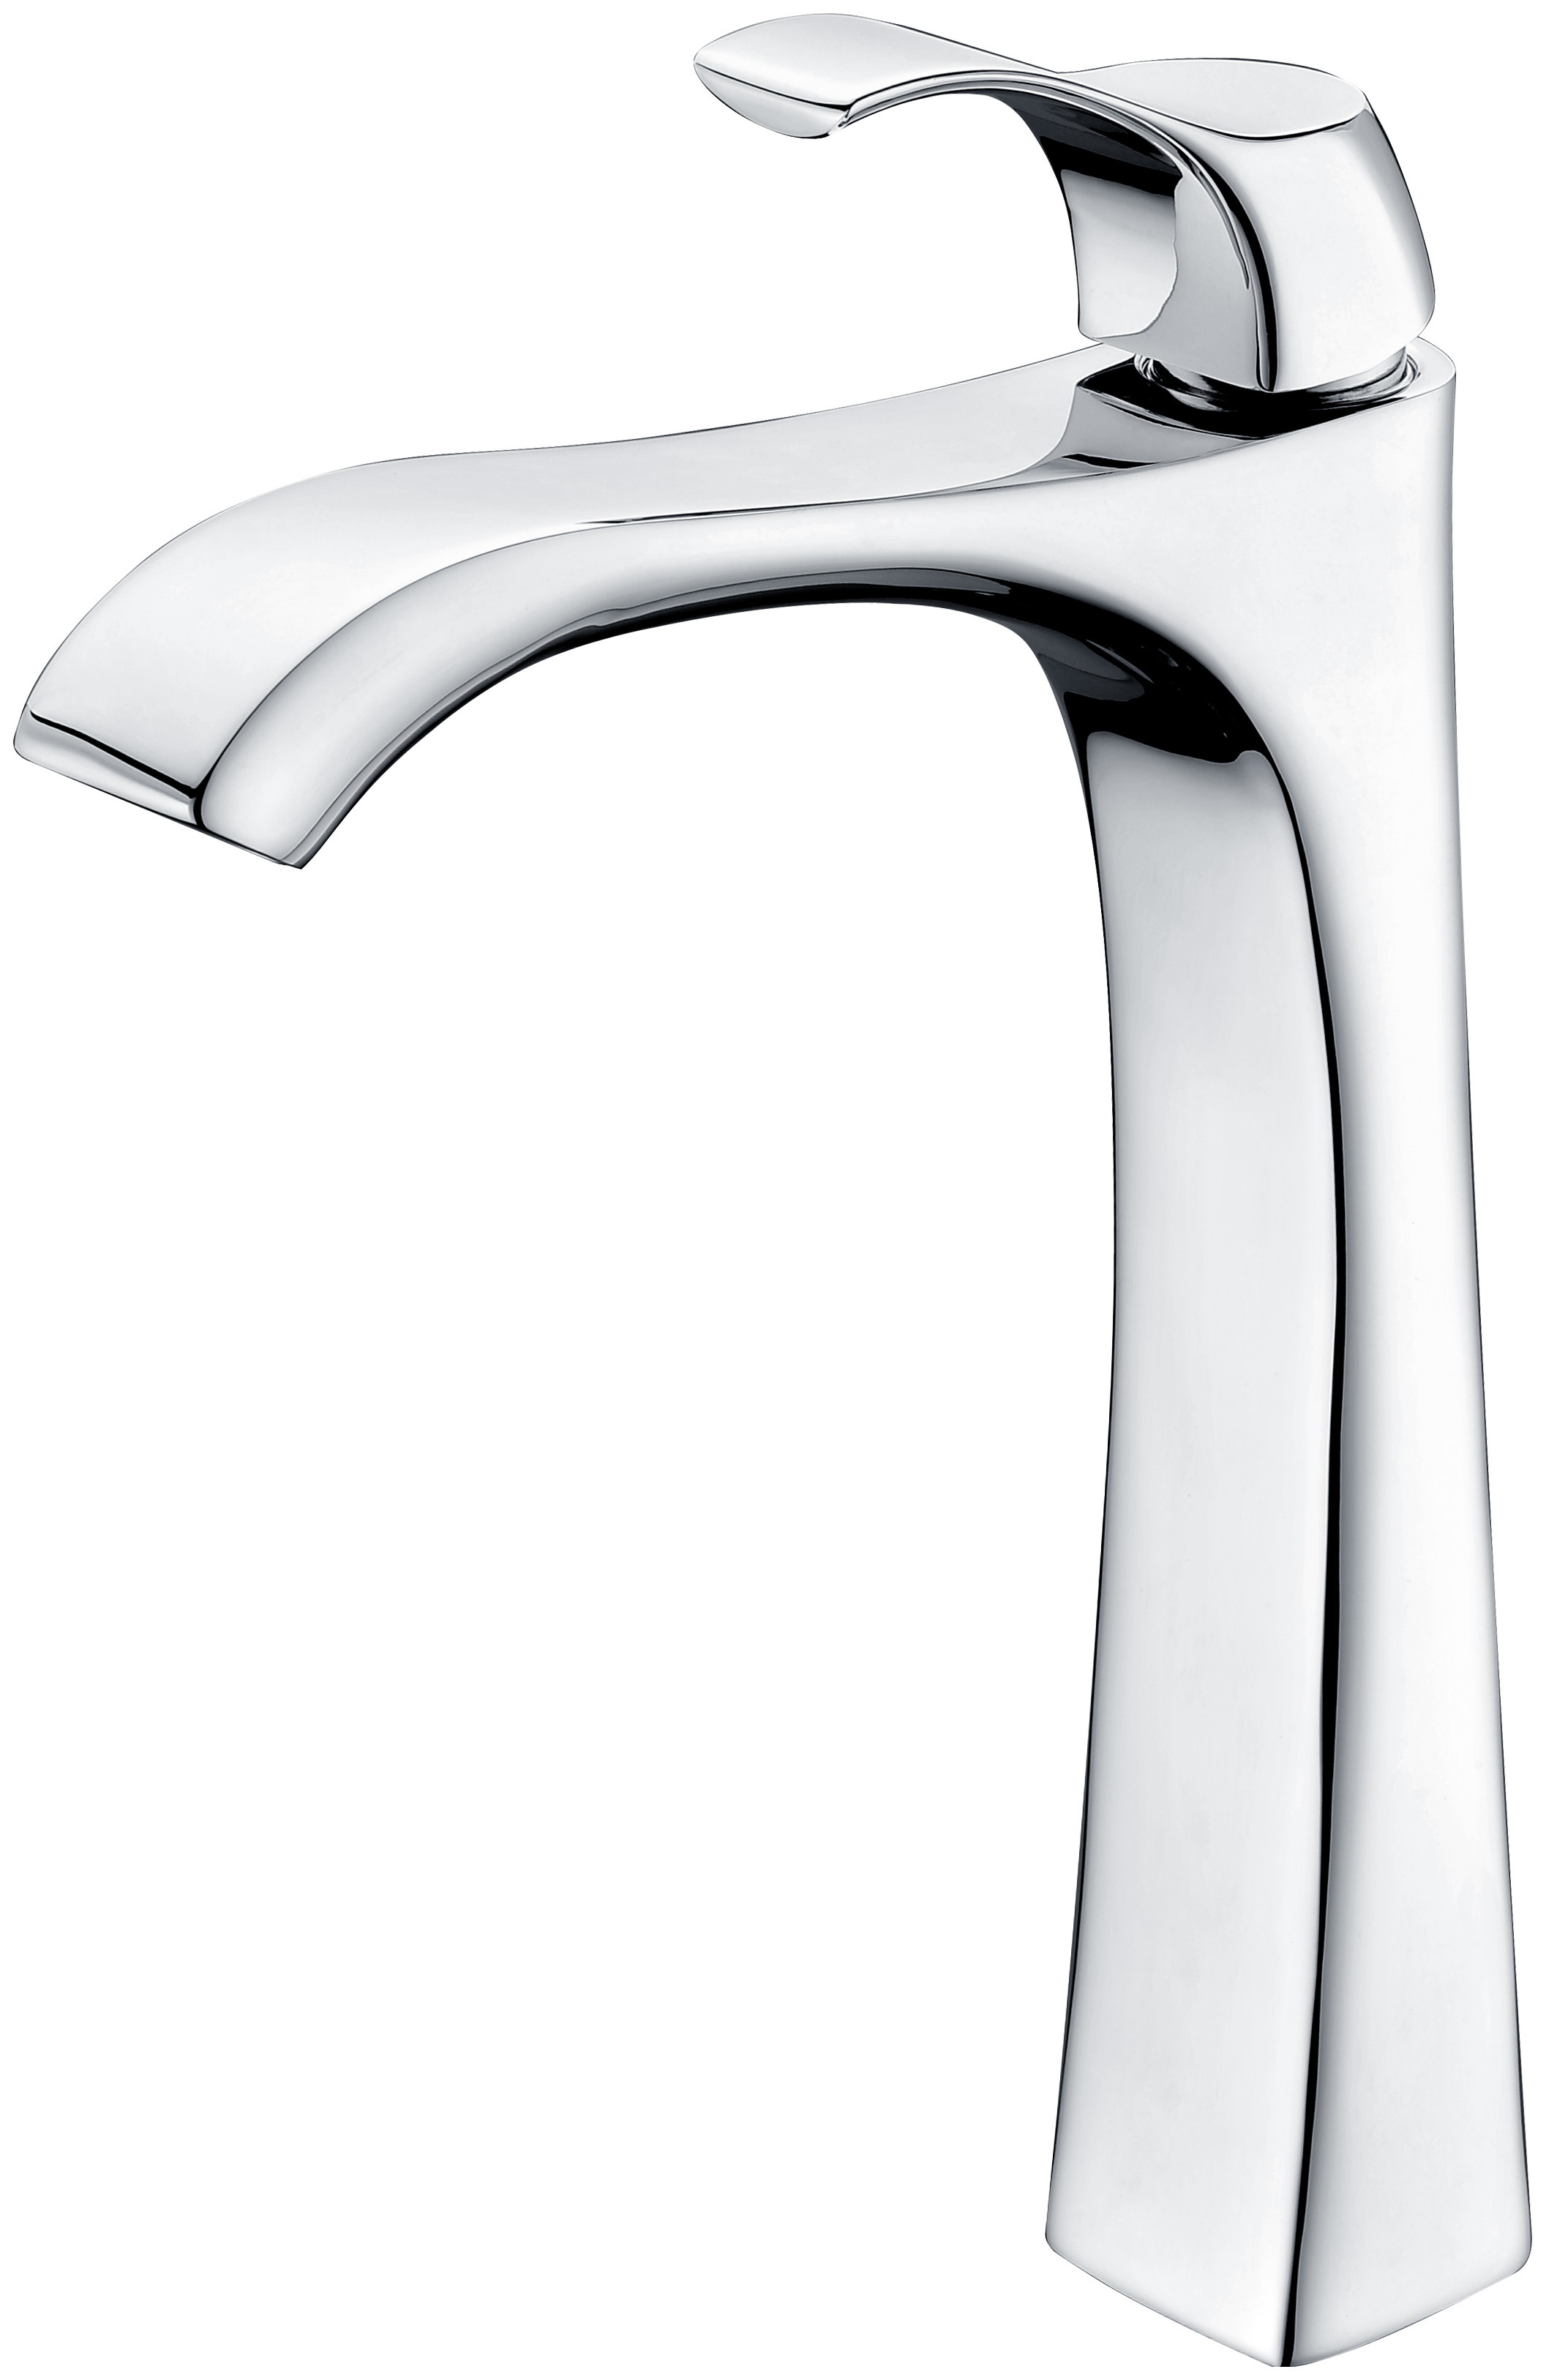 cheap wholesale kitchen bayscan canada discount brisbane and org faucets sinks taps